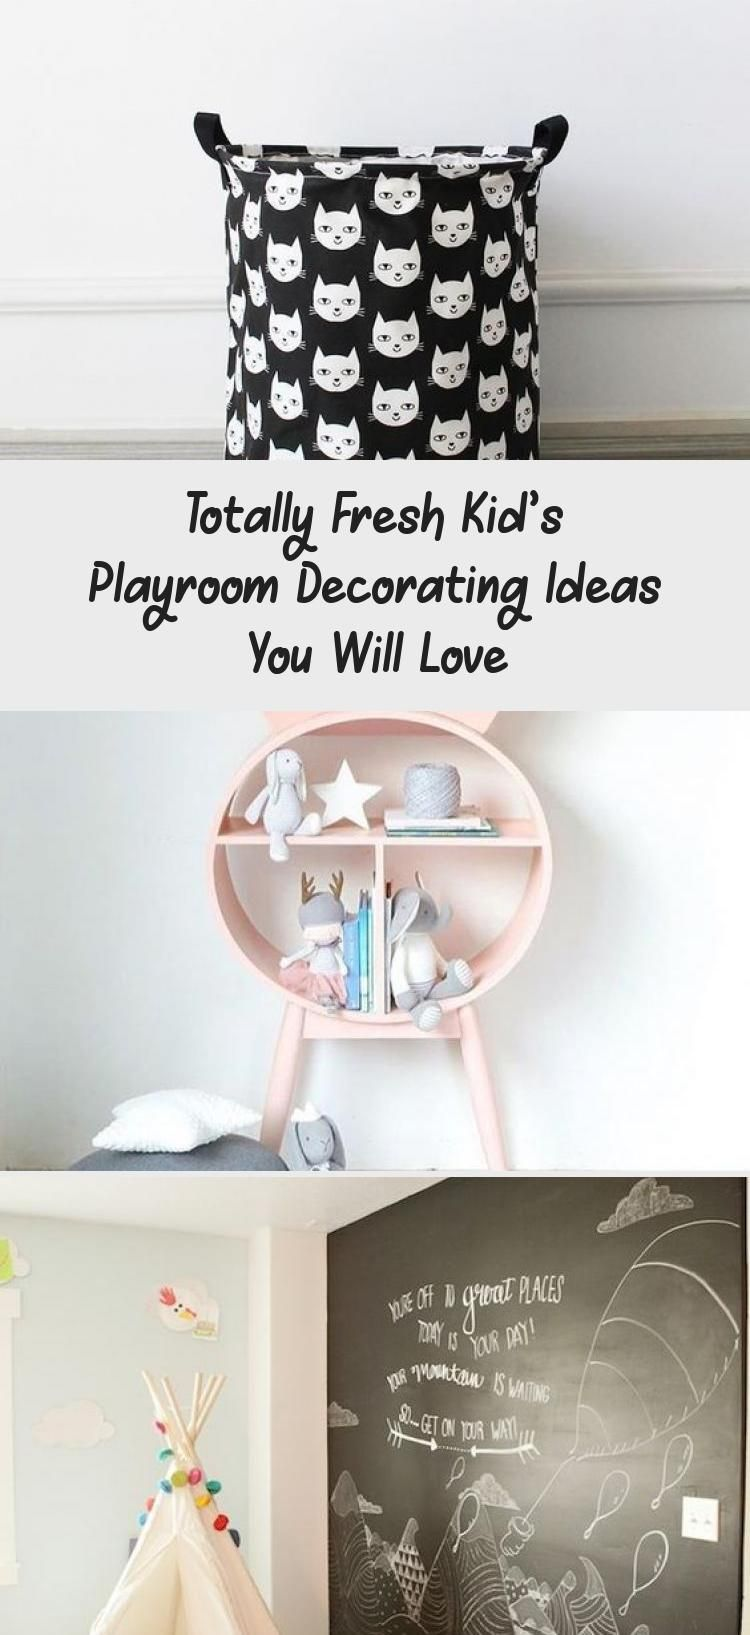 Totally Fresh Kid's Playroom Decorating Ideas You Will Love – Decor Dıy Children's room